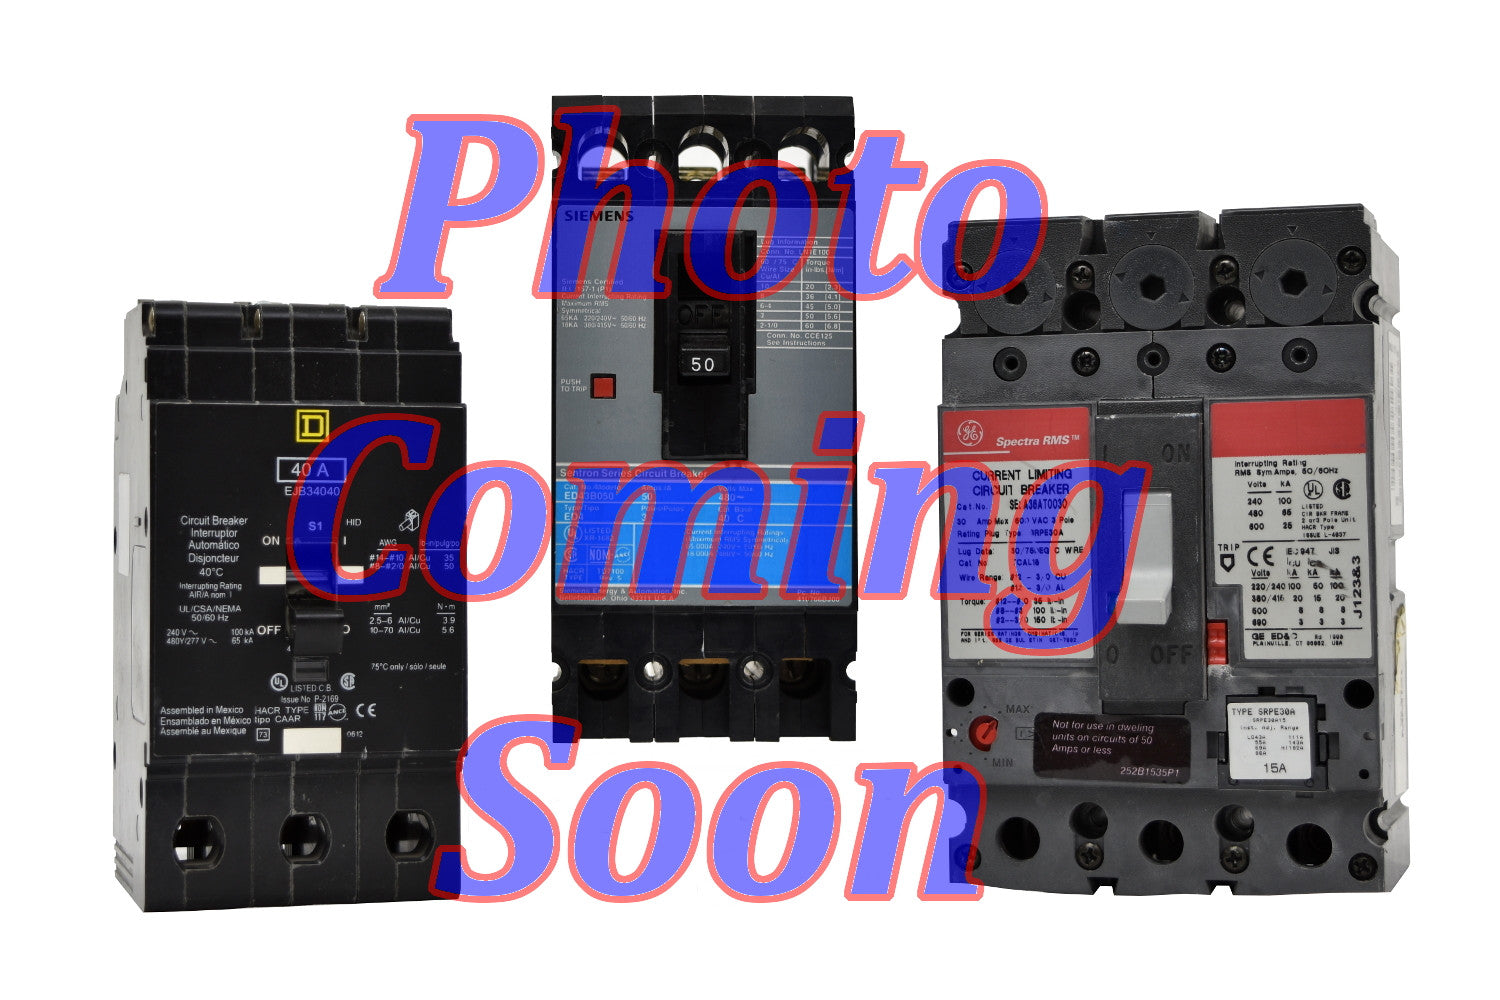 General Electric FCS326TE100R1 Circuit Breakers